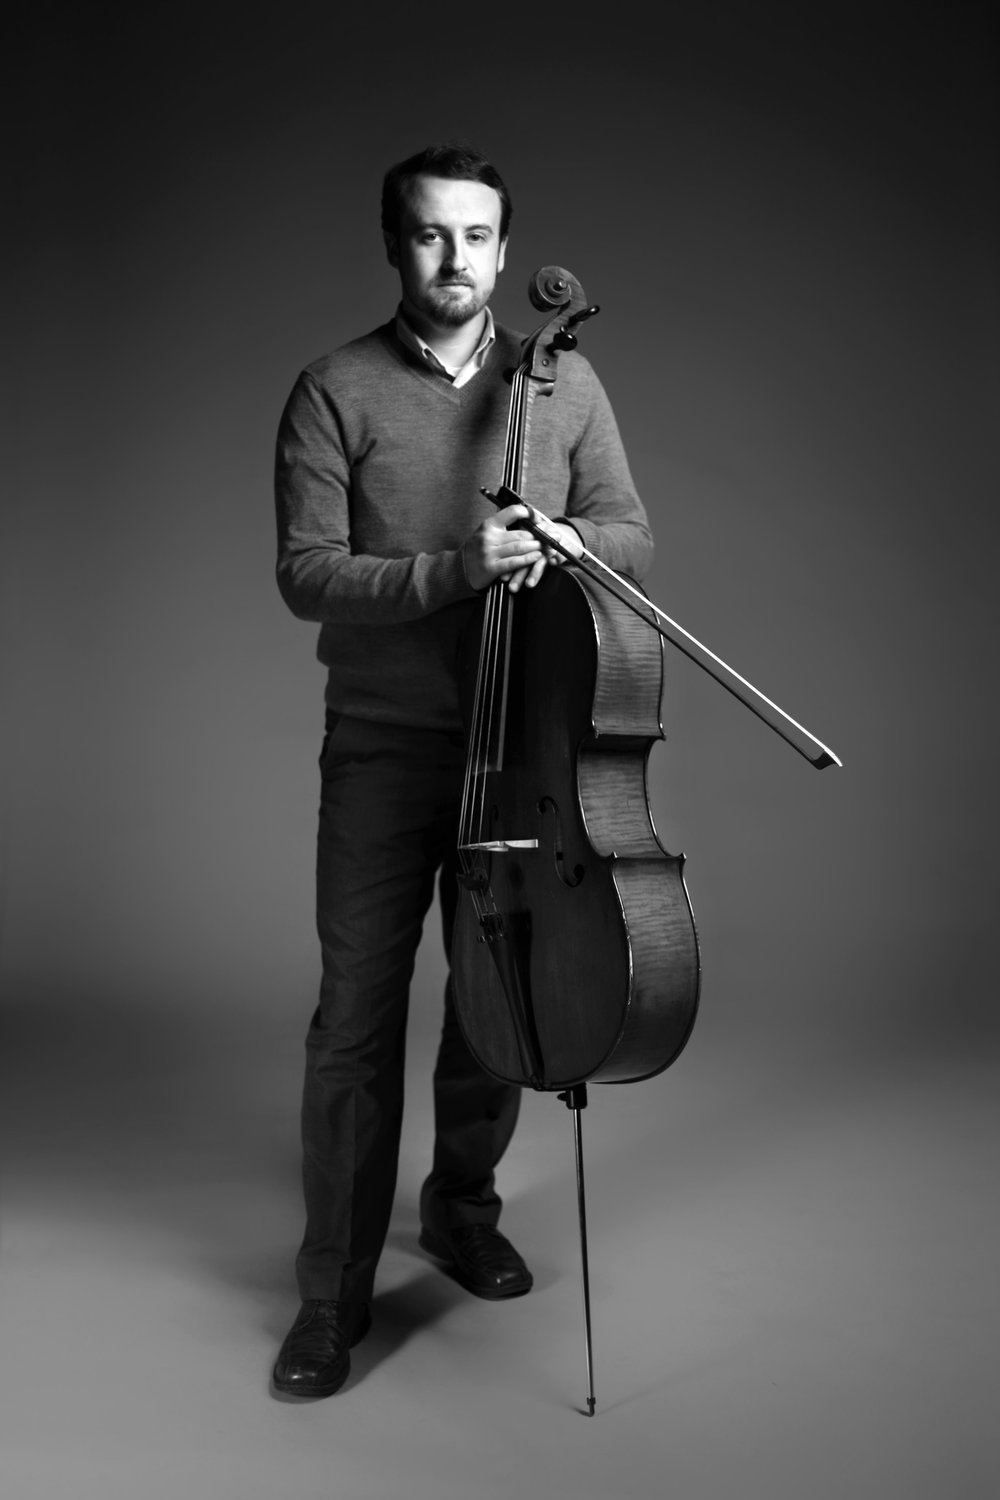 Ryan Ash, cellist, began his musical studies on the piano at the age of six. He earned his Bachelor of Music degree at the University of Illinois at Urbana-Champaign, studying cello with Brandon Vamos (of the Grammy-winning Pacifica Quartet) and piano with Dr. Yu-Chi Tai, and his Master of Music degree at the Chicago College of Performing Arts at Roosevelt University with Dr. Tanya Carey, former president of the SAA and with whom he continues long-term teacher training every summer. Ryan has also taken teacher training with Dr. Louis Bergonzi and Dr. Karen Hendricks (cello), Caroline Fraser (piano),  and Melanie Ron (early childhood music).  He has performed in masterclasses for Steven Doane, Richard Aaron, David Halen, Amit Peled, John Sharp, Wendy Warner, the Arianna, Biava, and Shanghai String Quartets, and has spent summers studying at the Meadowmount School, Innsbrook Institute, Madeline Island Music Camp, Britt Festival, and the Astona International Festival in Leysin, Switzerland. Before relocating to Pittsburgh, Ryan performed frequently as a member of the Sinfonia da Camera, the Champaign-Urbana, Eastern Illinois, and Decatur Symphony Orchestras, and the Lyria Piano Trio. His performance of Gian Carlo Menotti's Trio for Two Cellos and Piano was also featured on Chicago's classical radio station 98.7 WFMT. Ryan has since performed recitals of solo and chamber music on the Holy Trinity Concert Series, OvreArts, Music on the Edge, Living Room Chamber Music Project, and appeared with Ripieno Pittsburgh as well as the Westmoreland, Butler County, Huntington, and Ohio Valley symphonies. He maintains a teaching studio at the Center for Young Musicians.